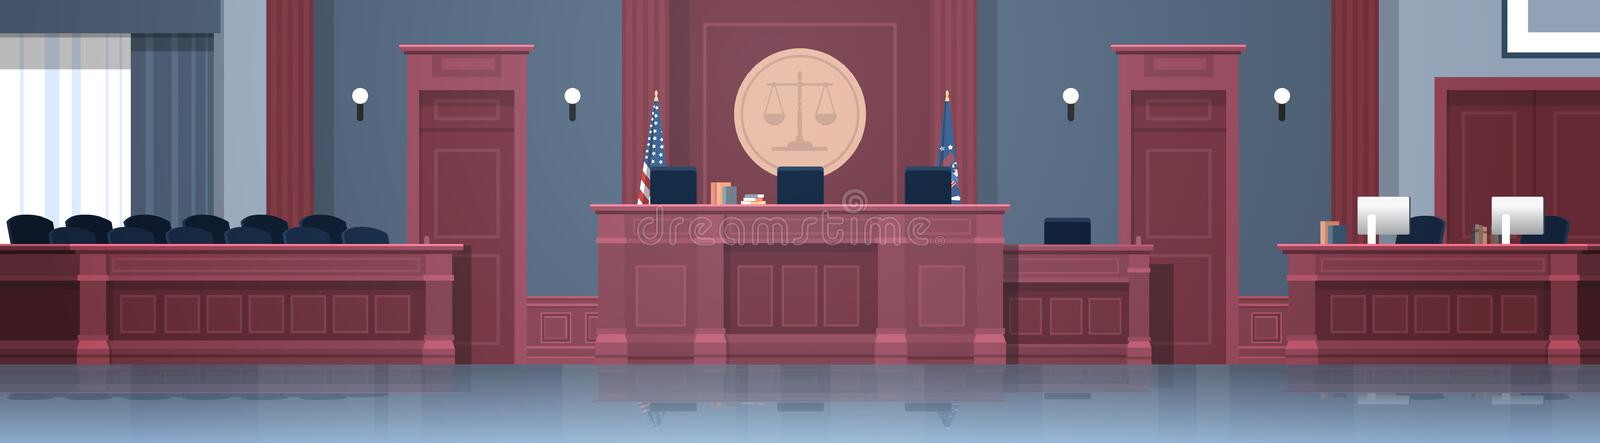 Empty courtroom with judge and secretary workplace jury box seats modern courthouse interior justice and jurisprudence. Concept horizontal banner vector royalty free illustration